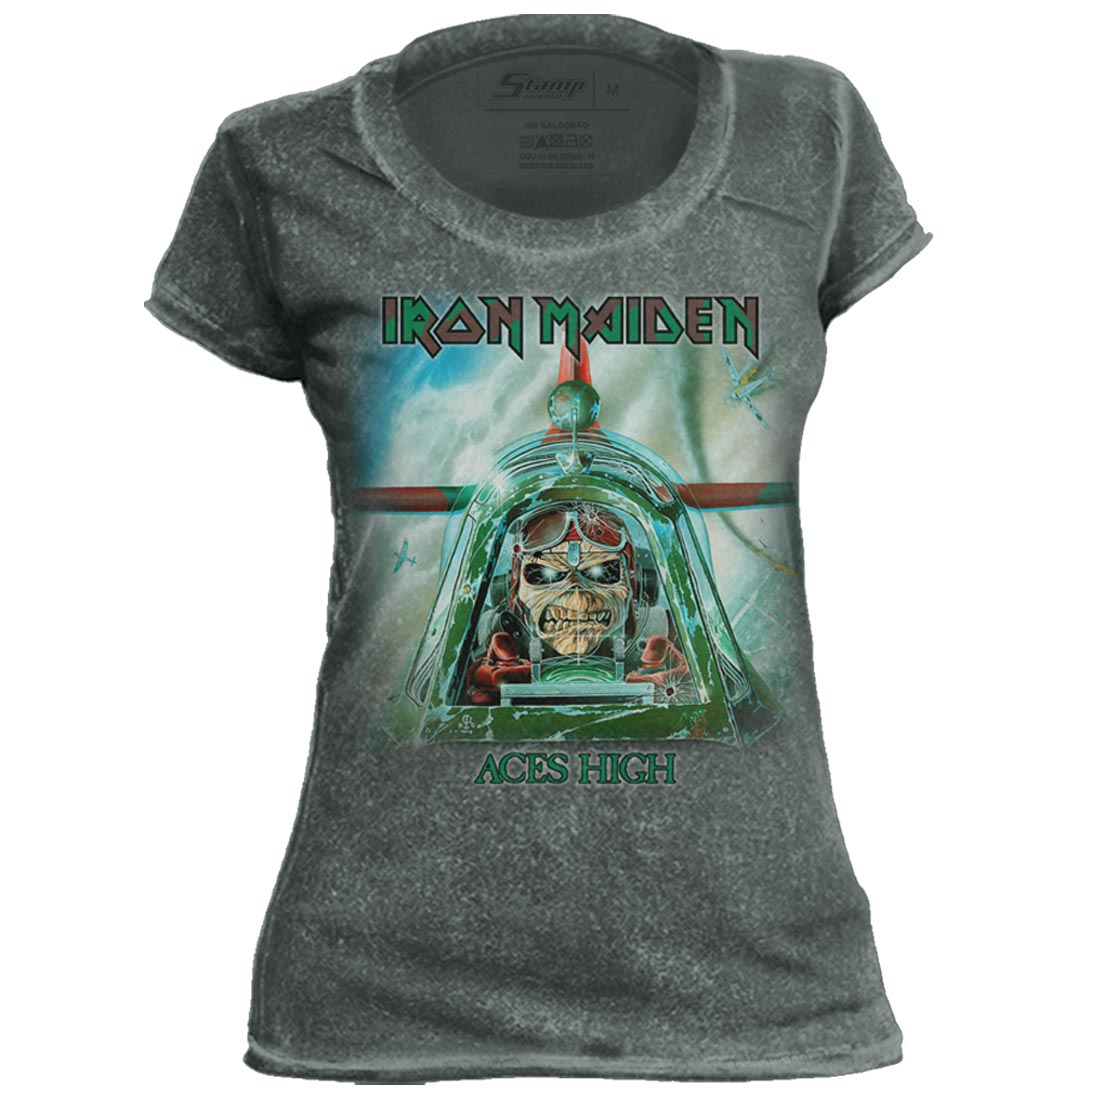 Camiseta Feminina Especial Iron Maiden Aces High